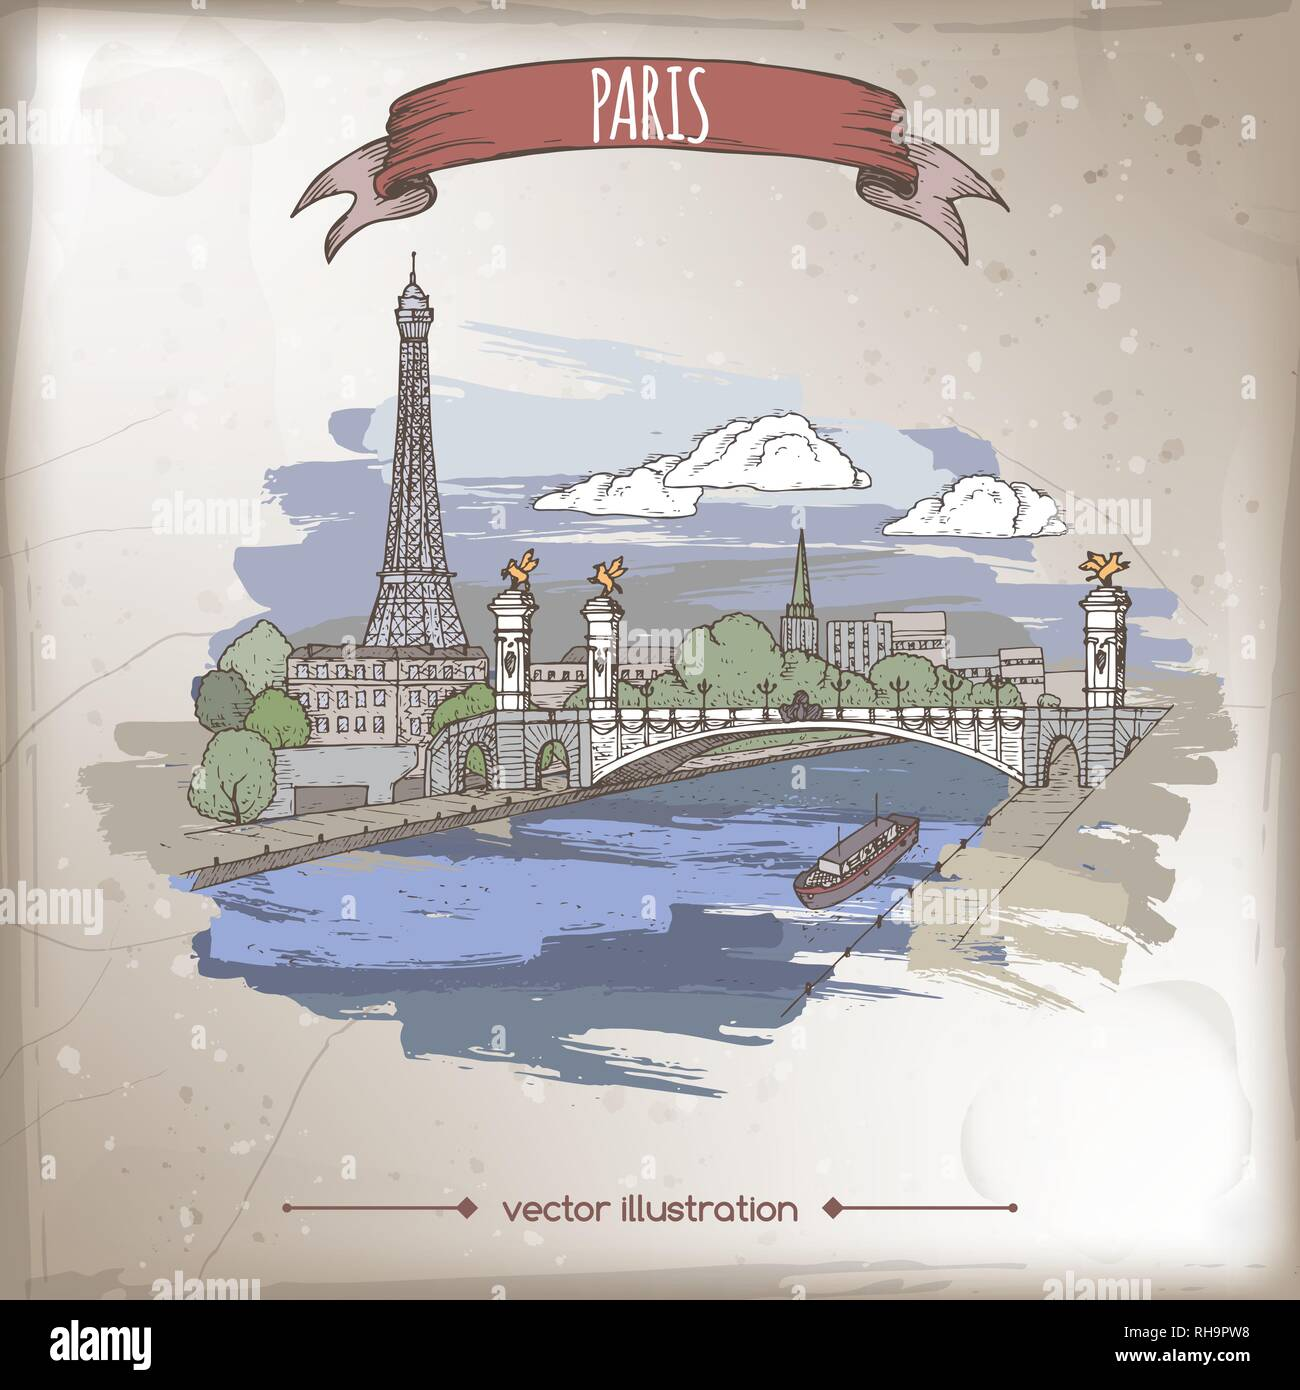 Vintage color travel illustration with Eiffel tower and Pont Alexandre bridge in Paris, France. Hand drawn sketch. - Stock Vector